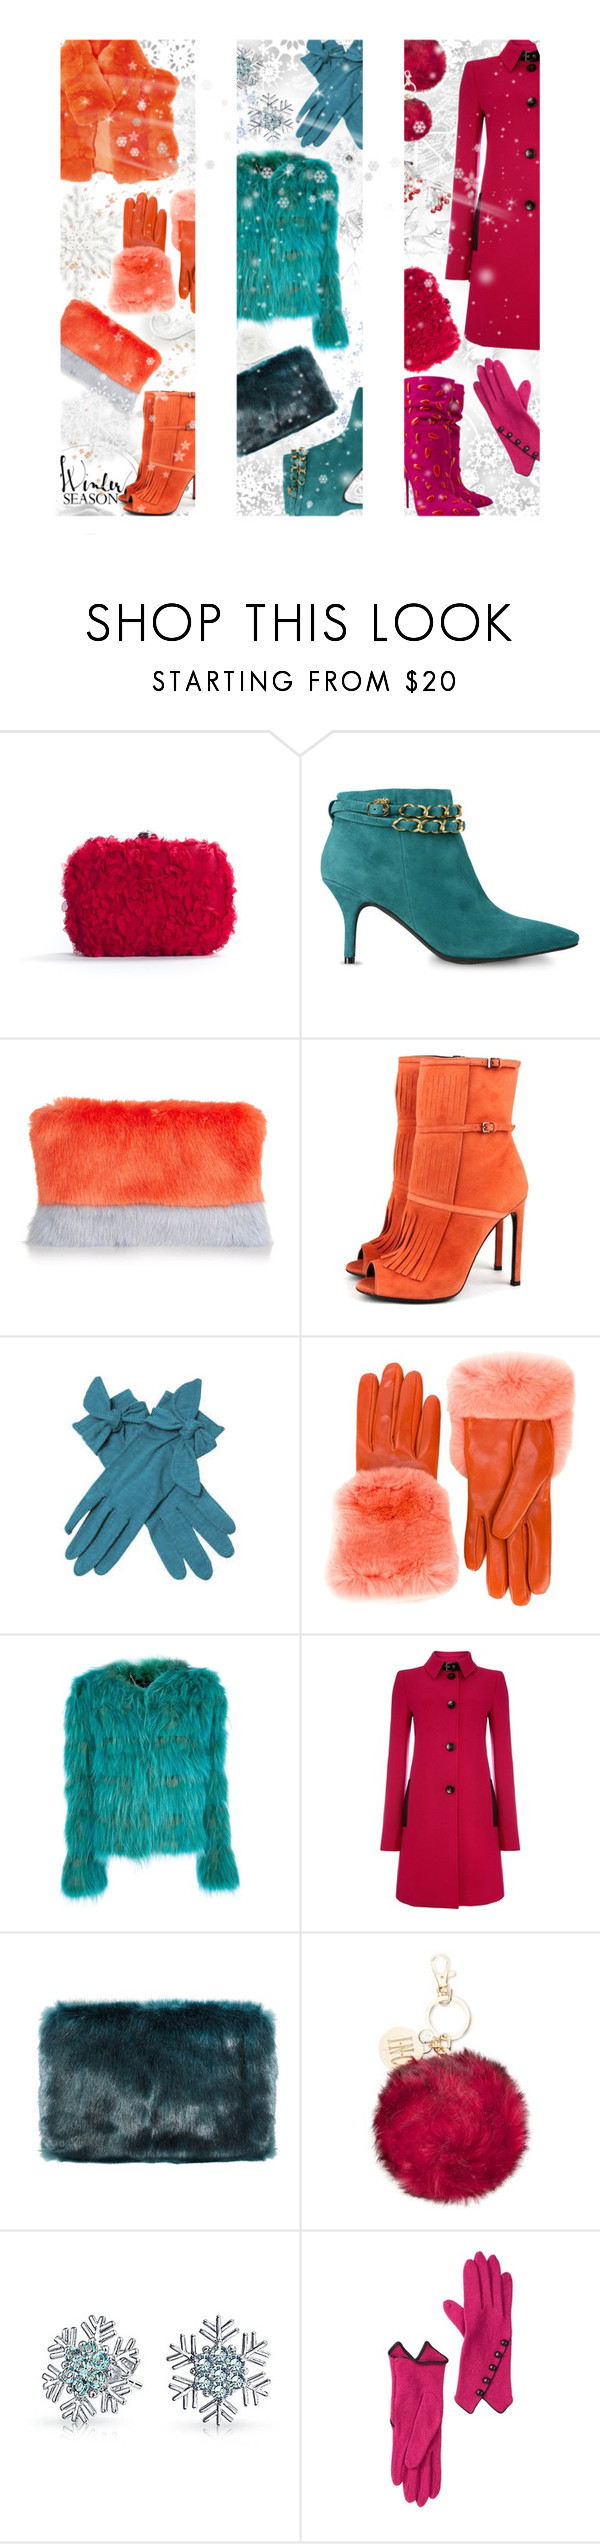 """WINTER COLORS - 6 Dec 2015"" by tupac4eva ❤ liked on Polyvore featuring mode, Lulu Townsend, Love Moschino, Shrimps, Blugirl, Gucci, Miss Selfridge, GALA, SLY 010 et Armani Jeans"